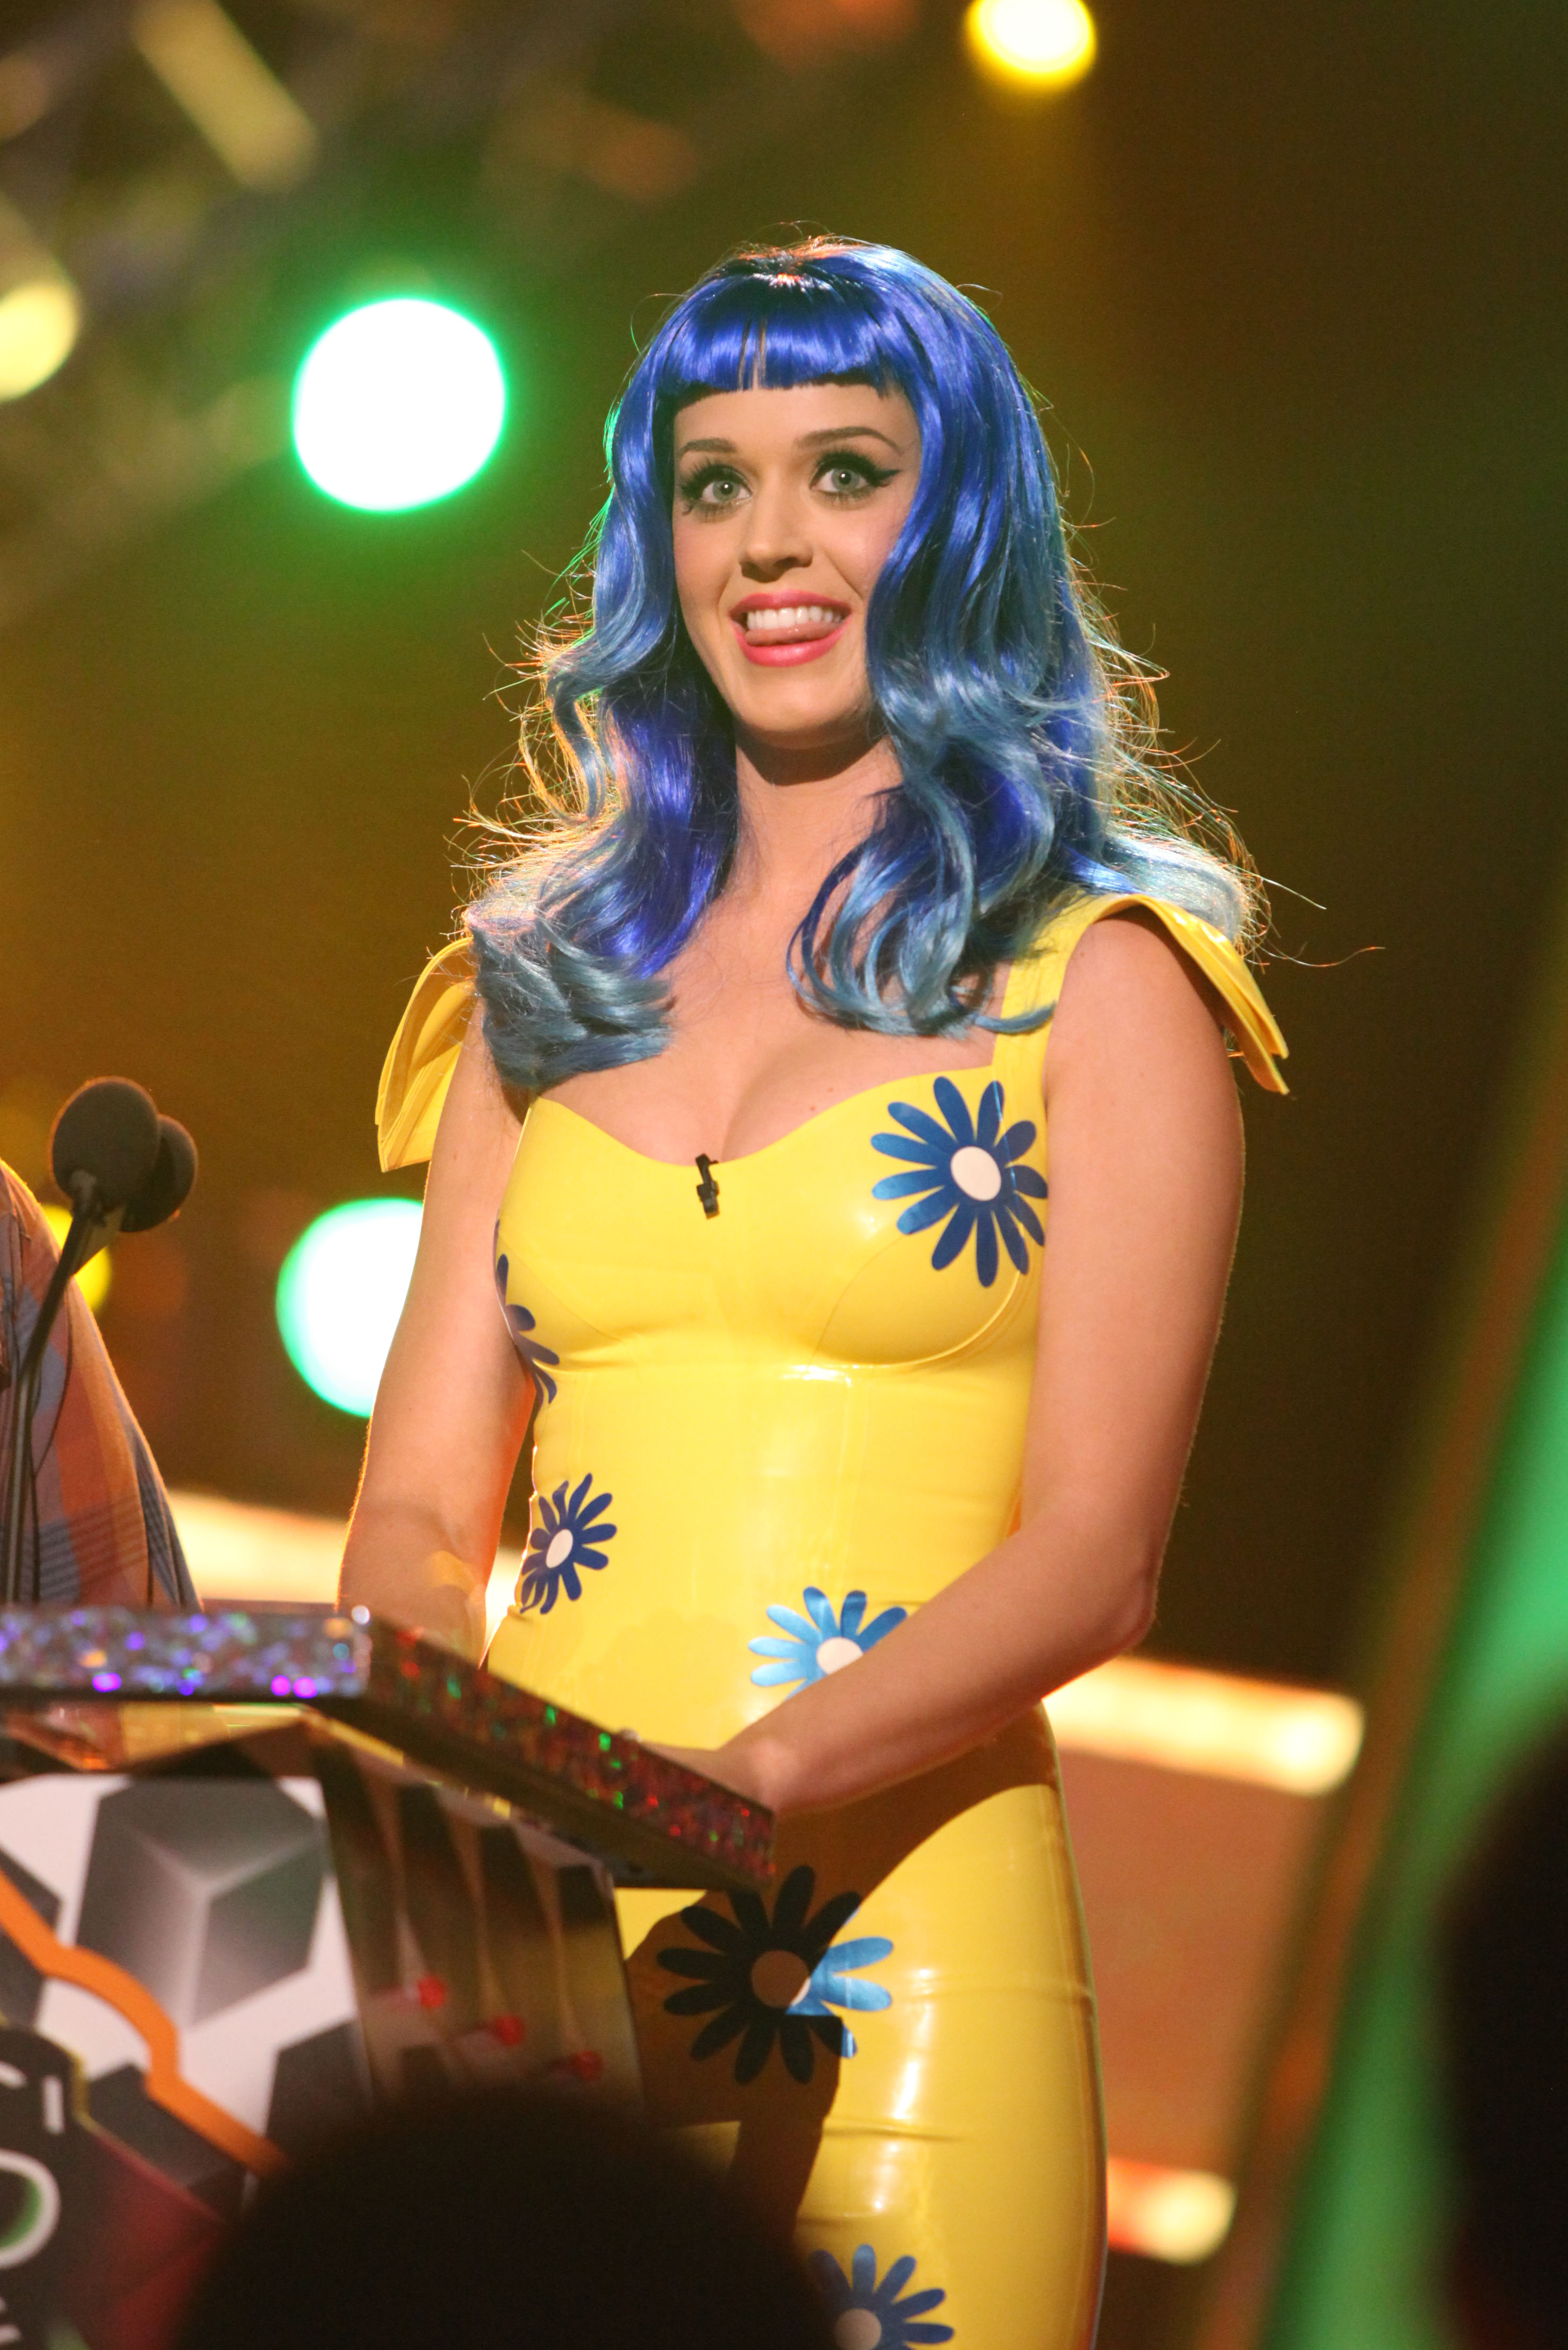 Just In: Katy Perry To Perform At Kids\' Choice Awards March 31 ...